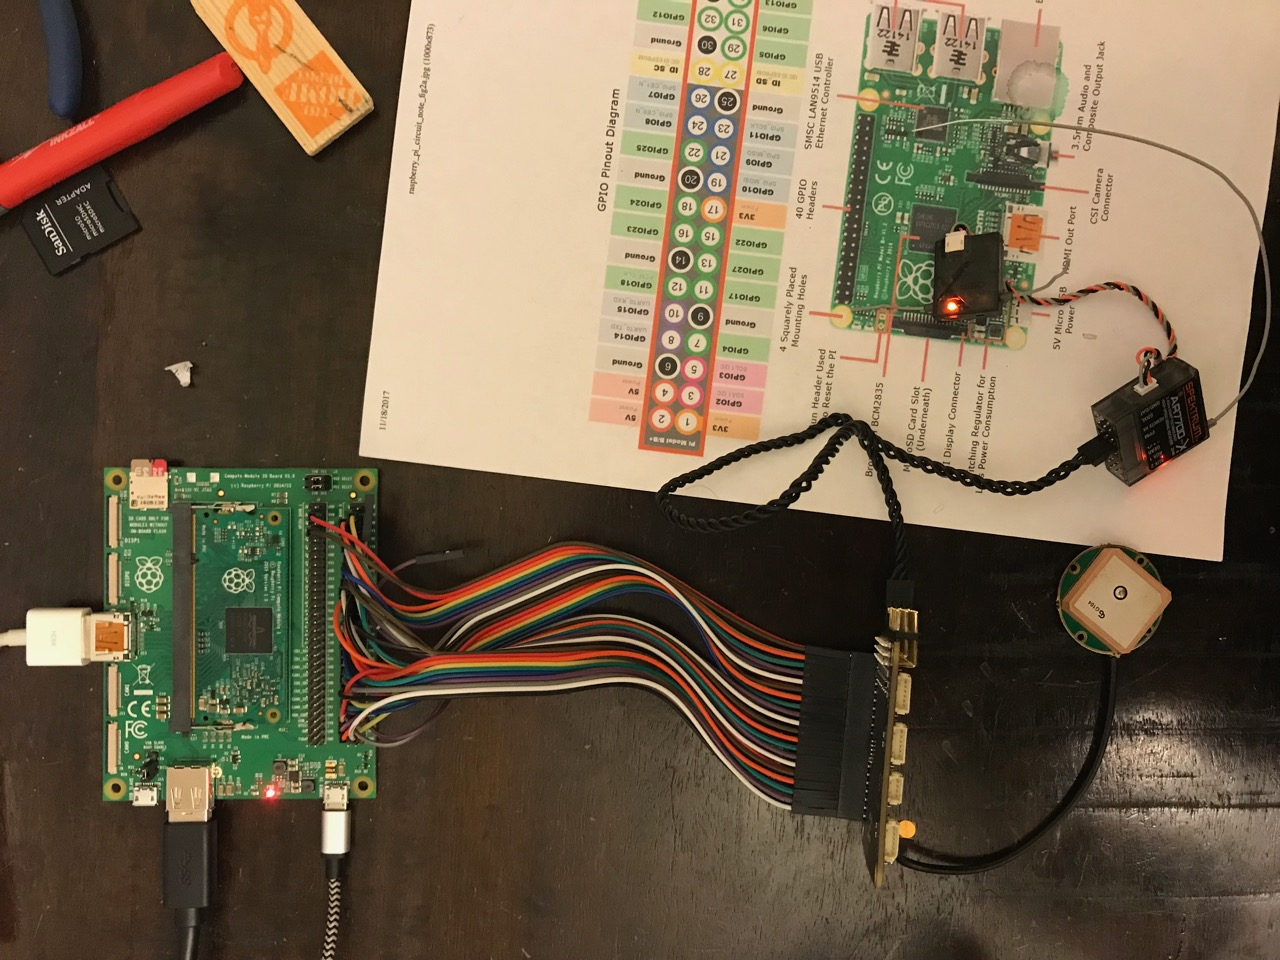 Magnificent Navio2 Working On Raspberry Pi Compute Module 3 Project Share Wiring Digital Resources Lavecompassionincorg